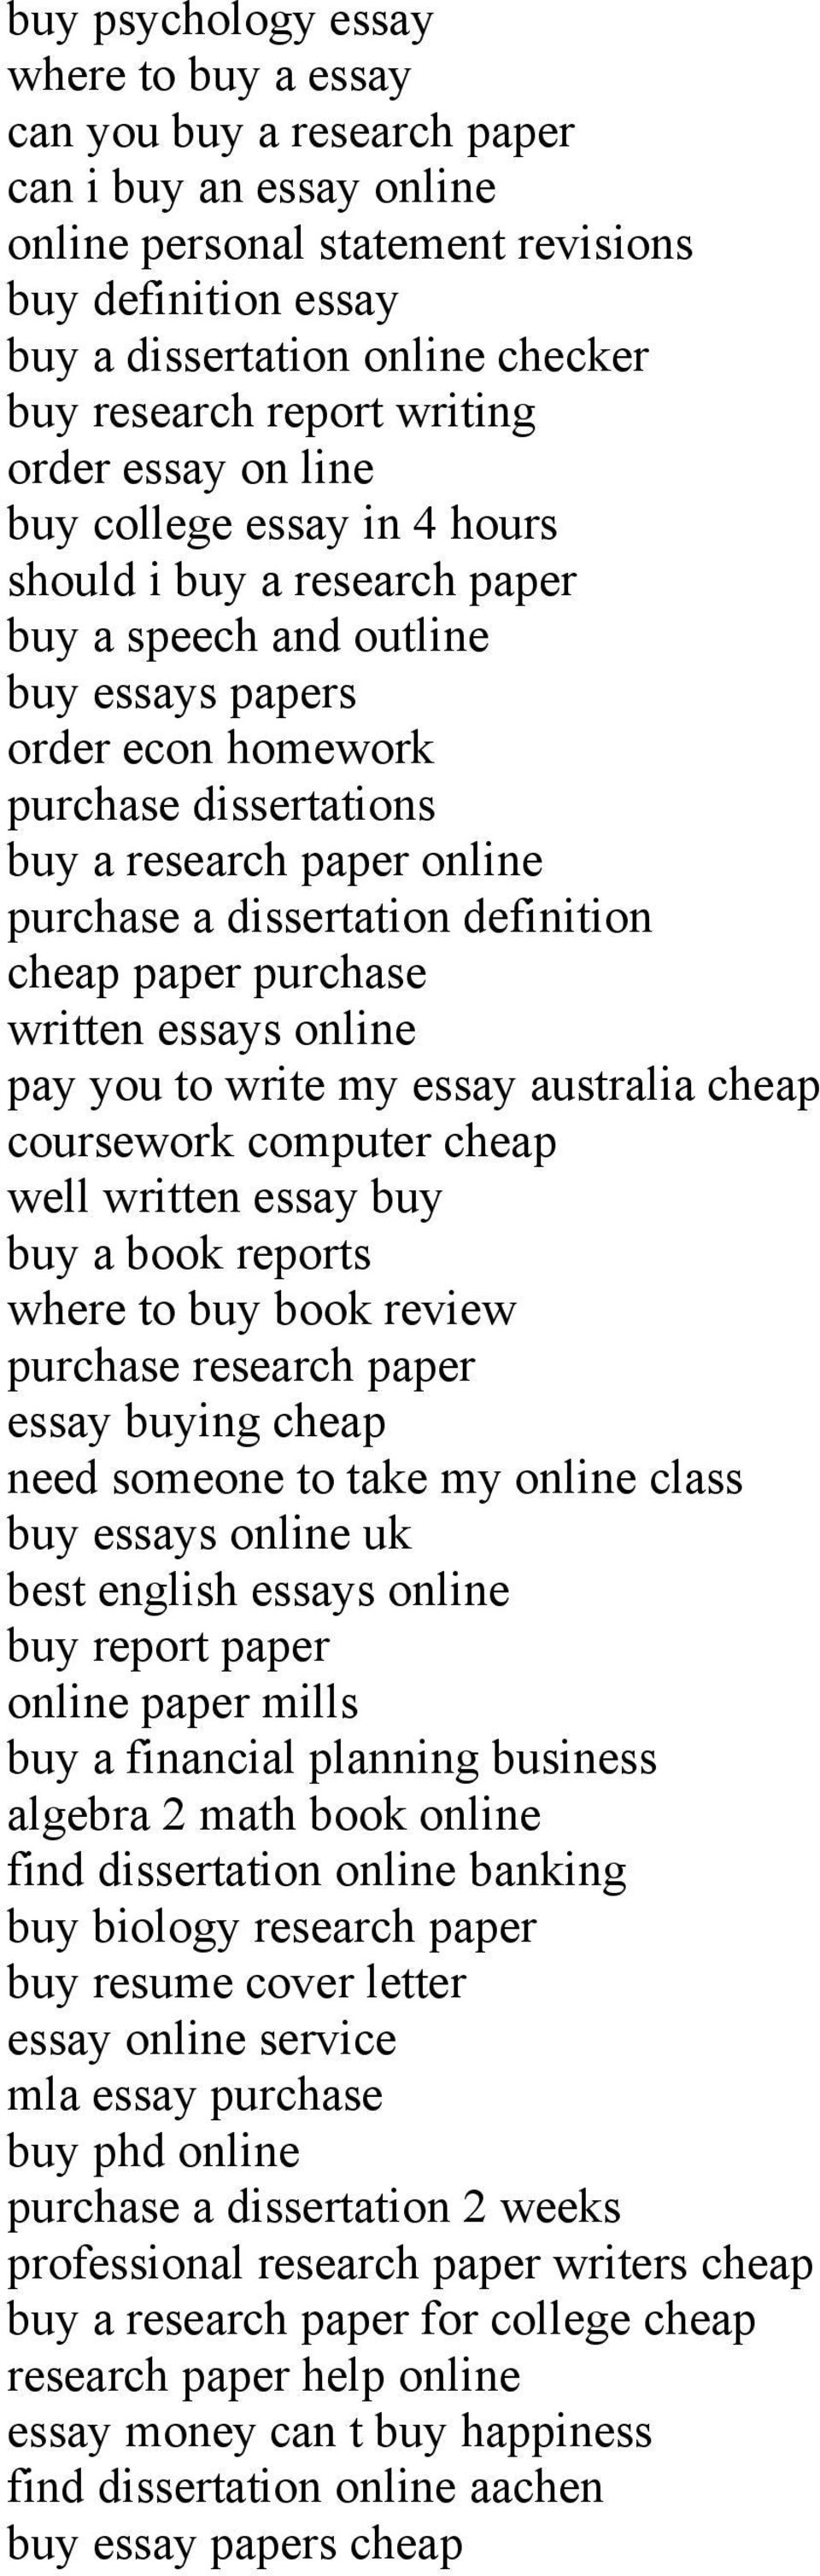 research paper online purchase a dissertation definition cheap paper purchase written essays online pay you to write my essay australia cheap coursework computer cheap well written essay buy buy a